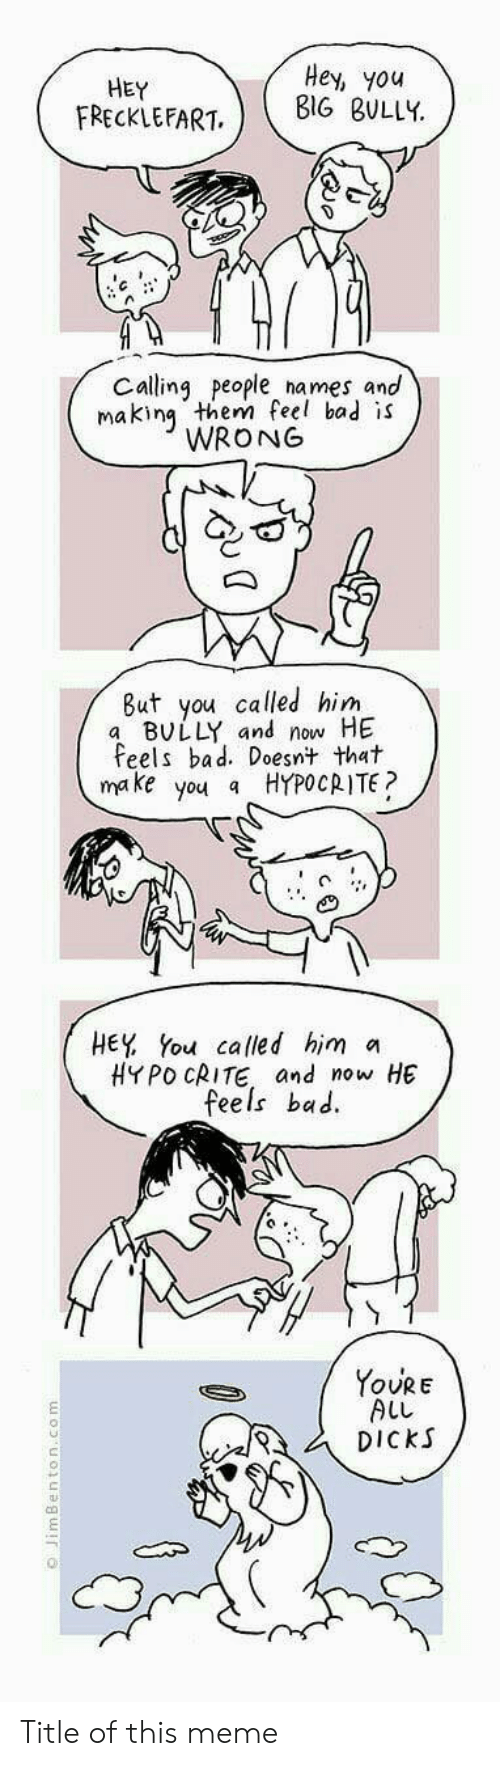 Bad, Dicks, and Meme: HEY  FRECKLEFART  Hey, you  BIG BULLY  Calling people names and  makin them feel bad is  WRONG  But you called him  a BULLY and now HE  Feels bad. Doesnt that  make you a HYPOCRITE?  HEY You called him a  HYPO CRITE and now HE  feels bac.  YoURE  ALL  DiCkS  む   Title of this meme